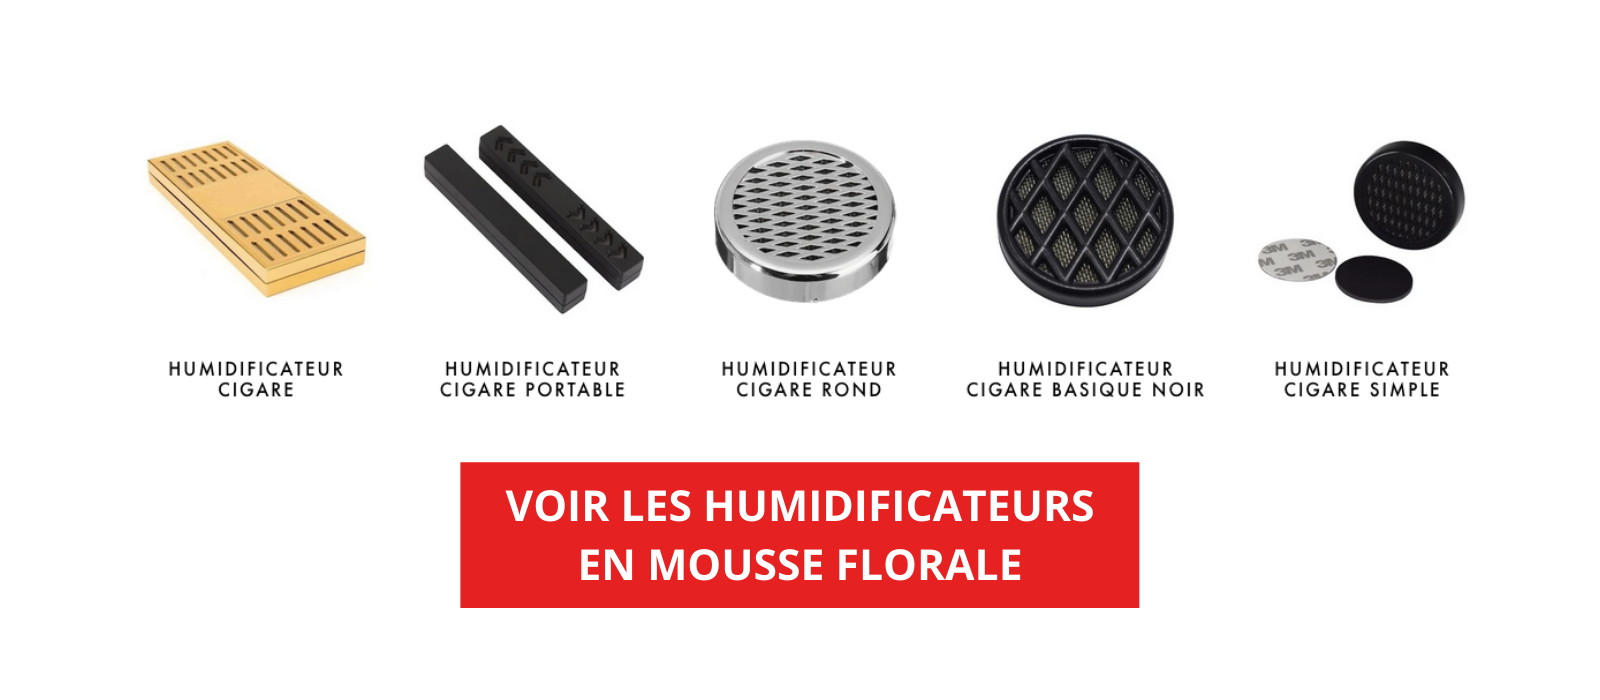 humidificateur mousse florale